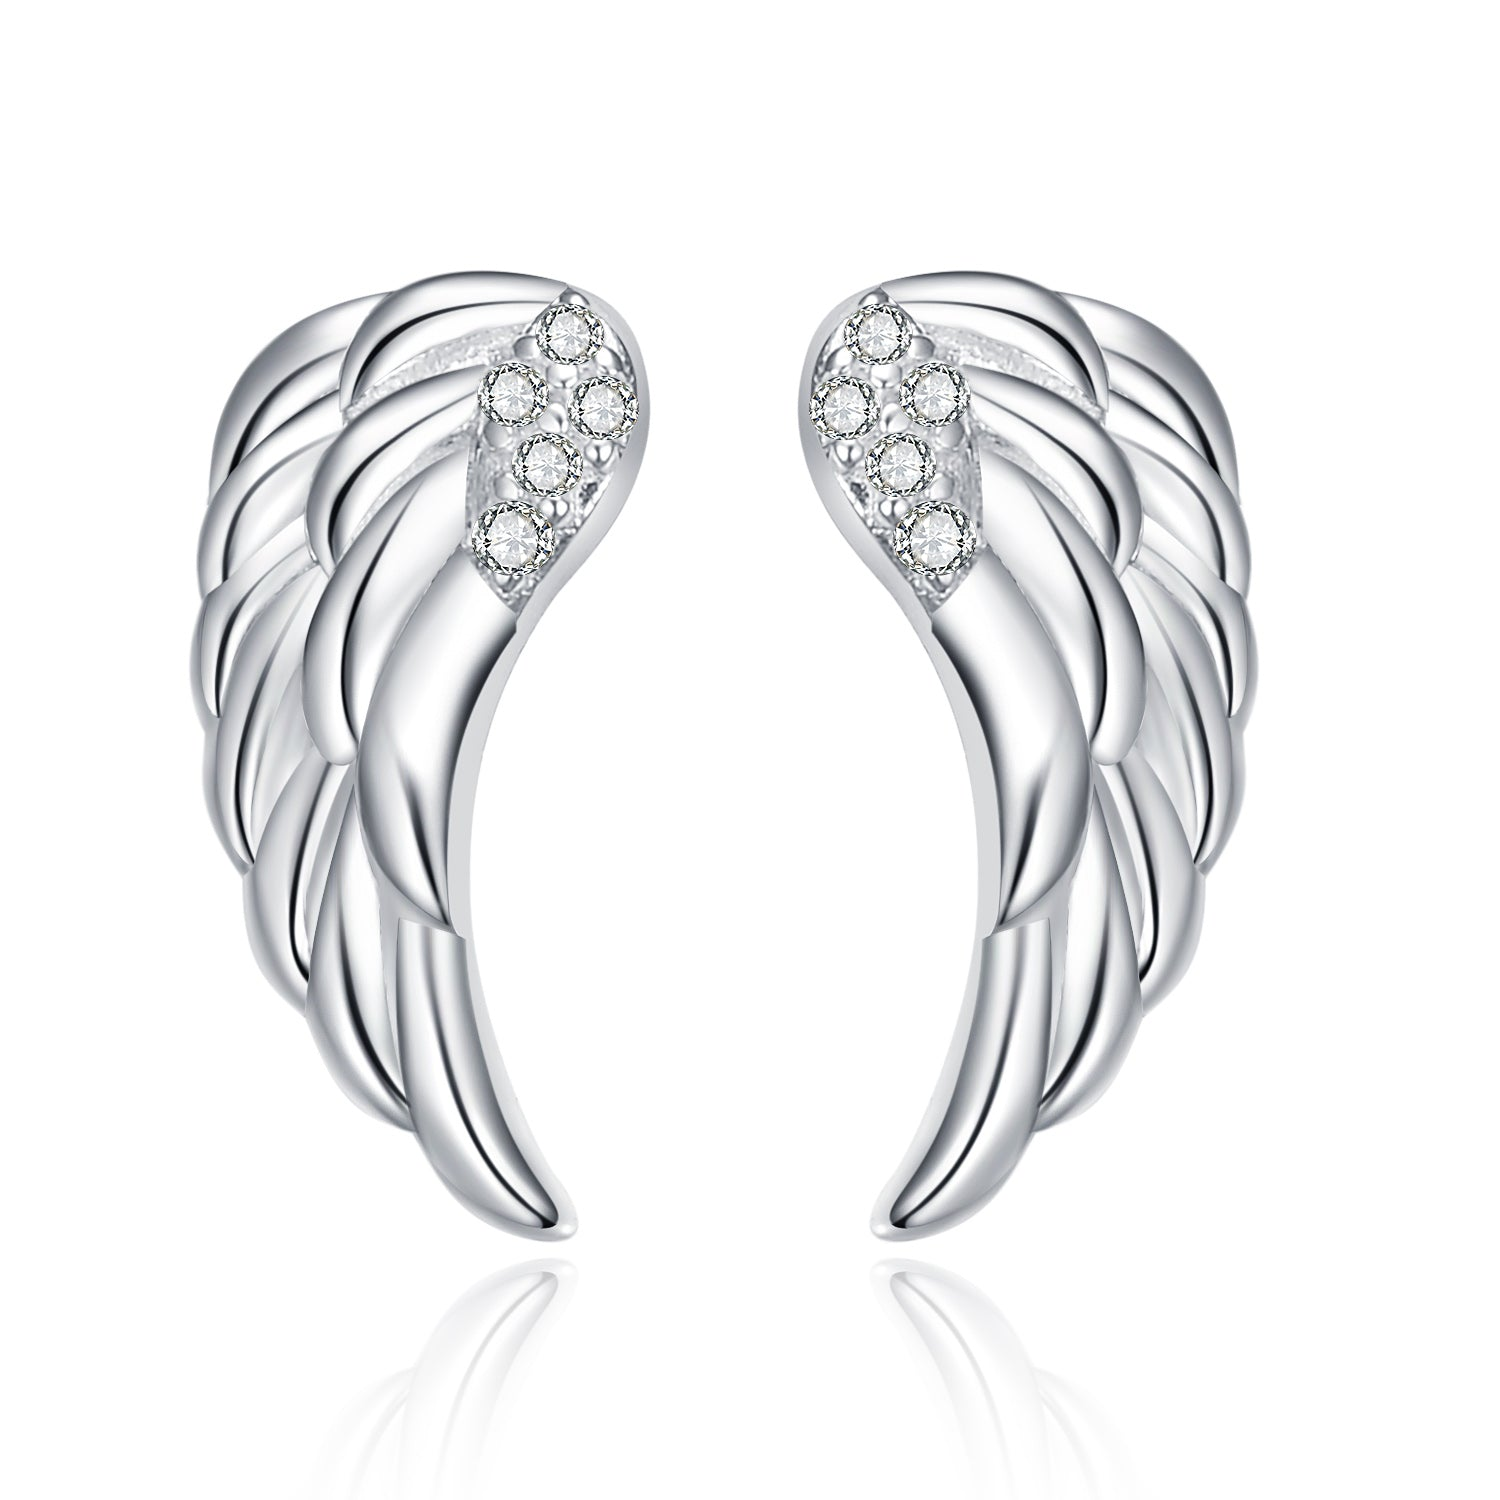 Wing Earrings 925 Silver Sterling Good Quality Polished Earrings Design